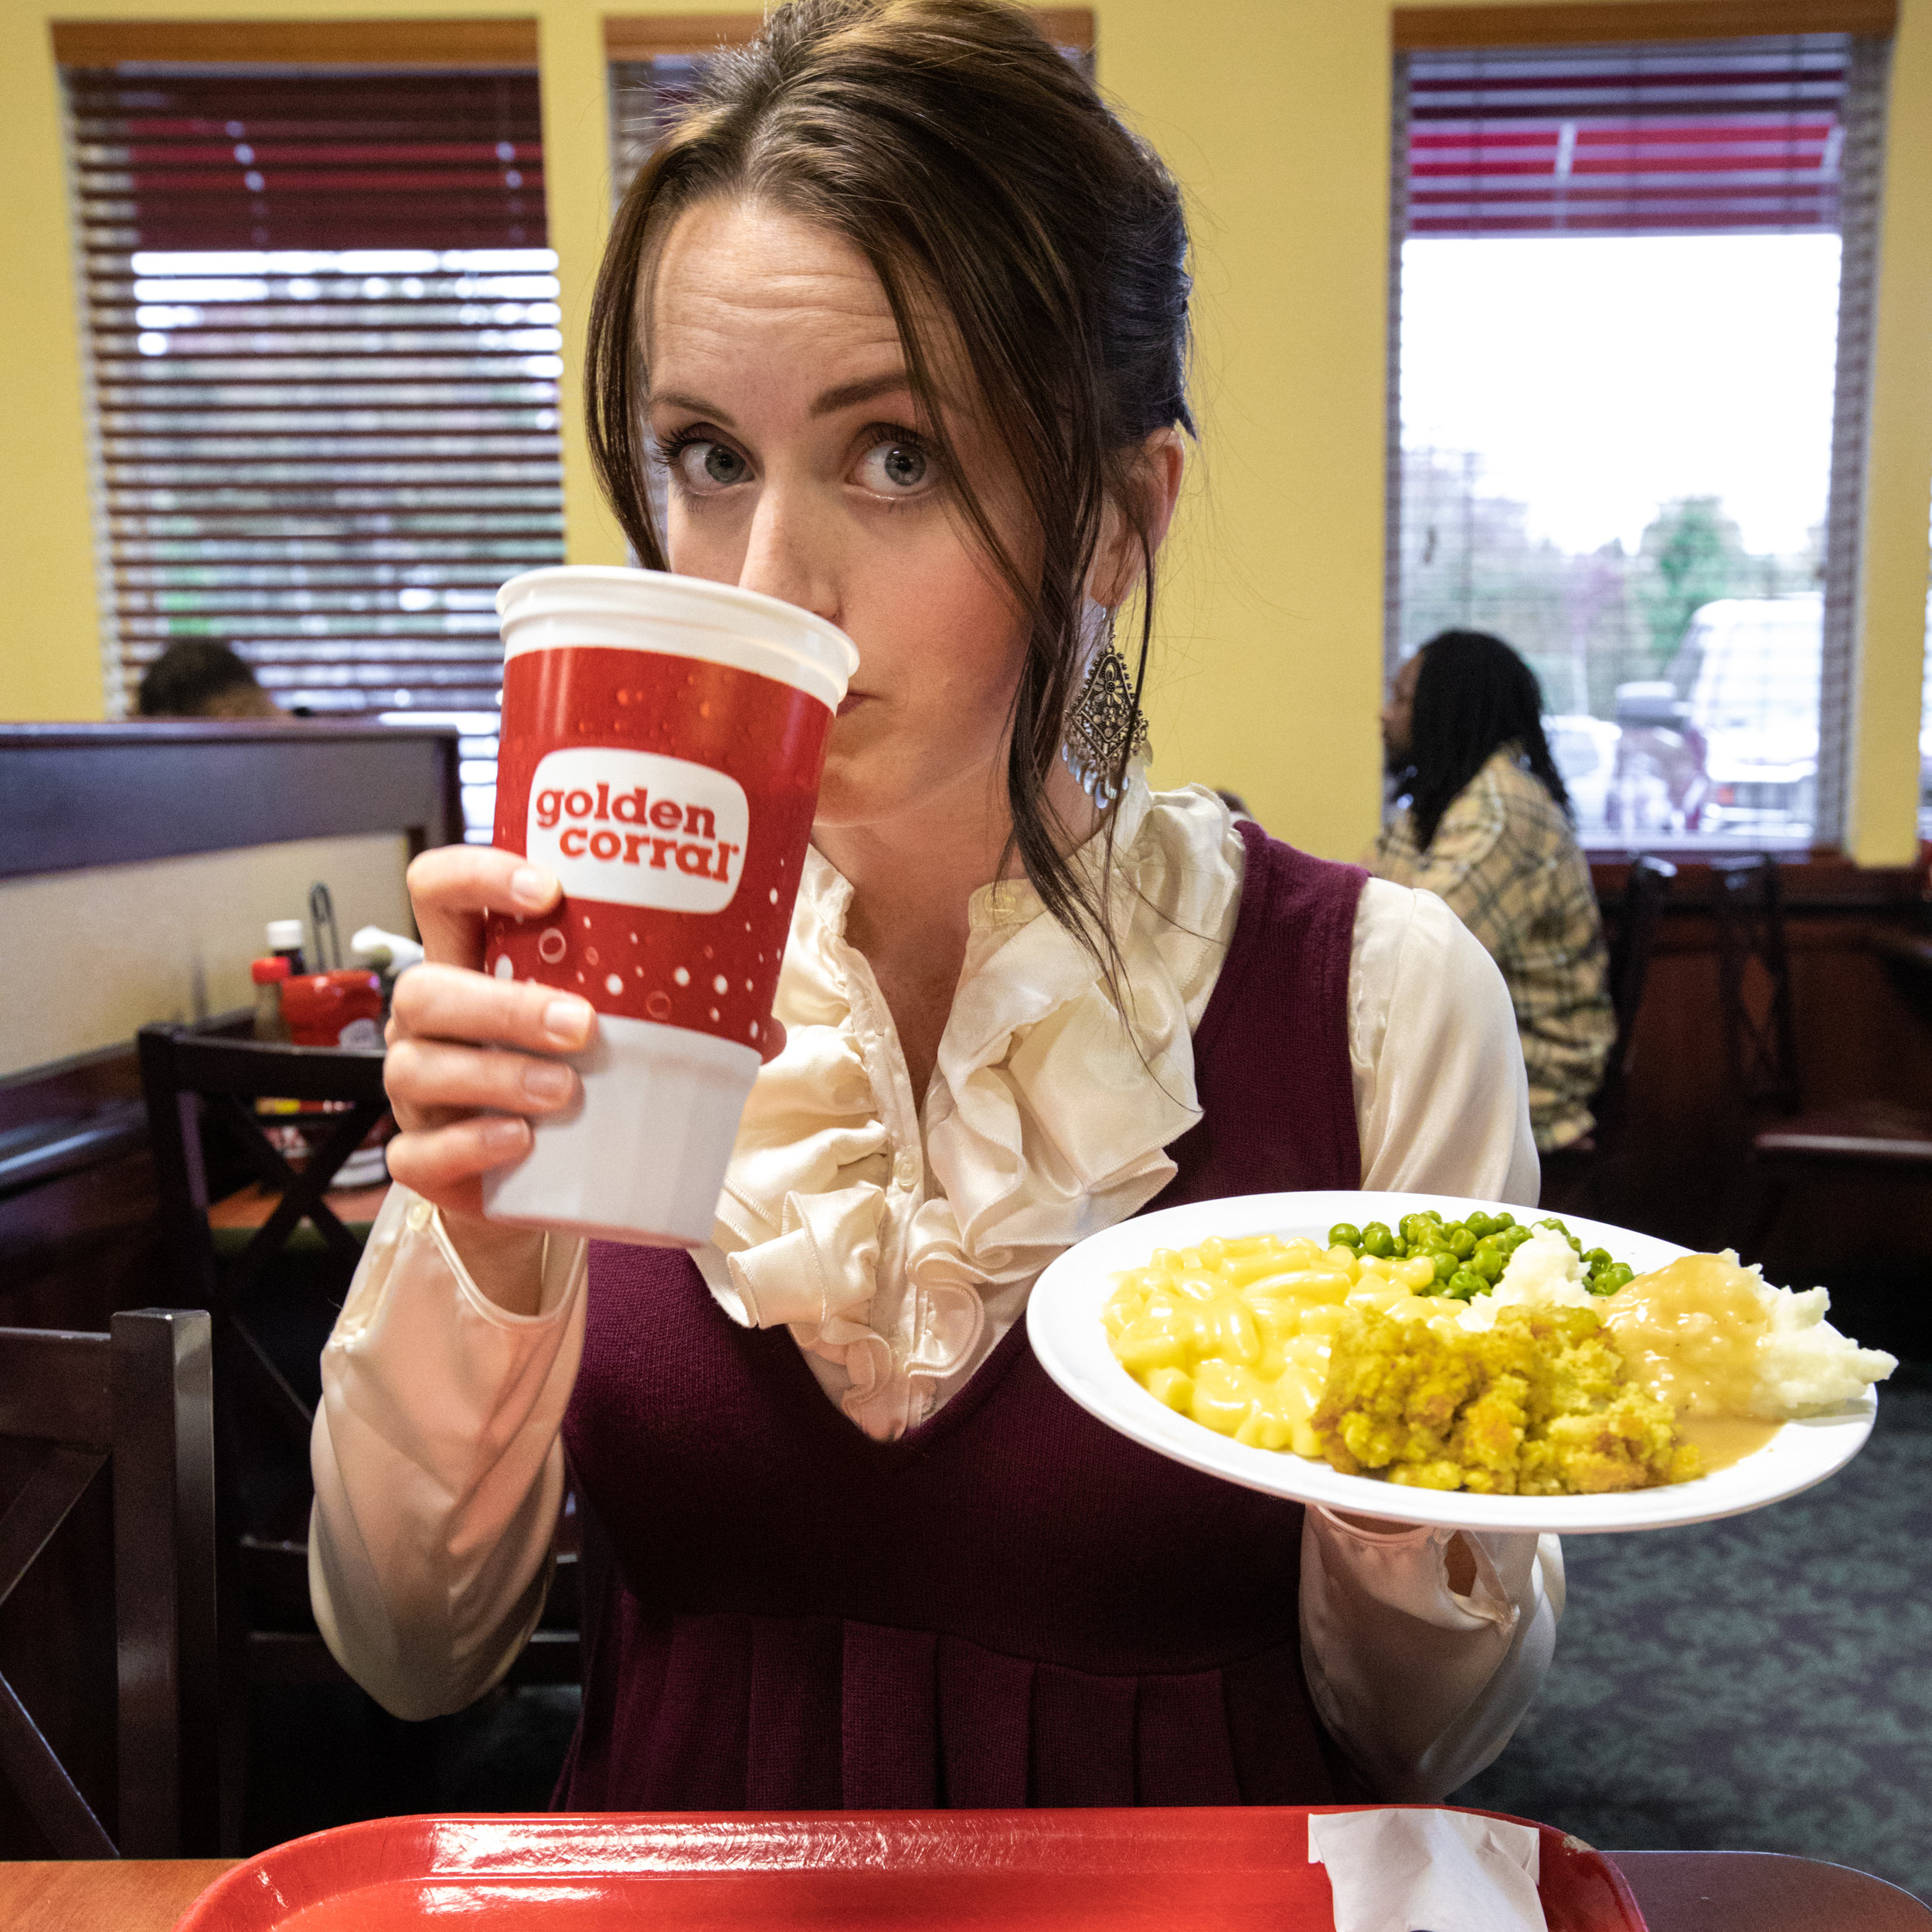 Almost Balanced Foodie Golden Corral-3.jpg